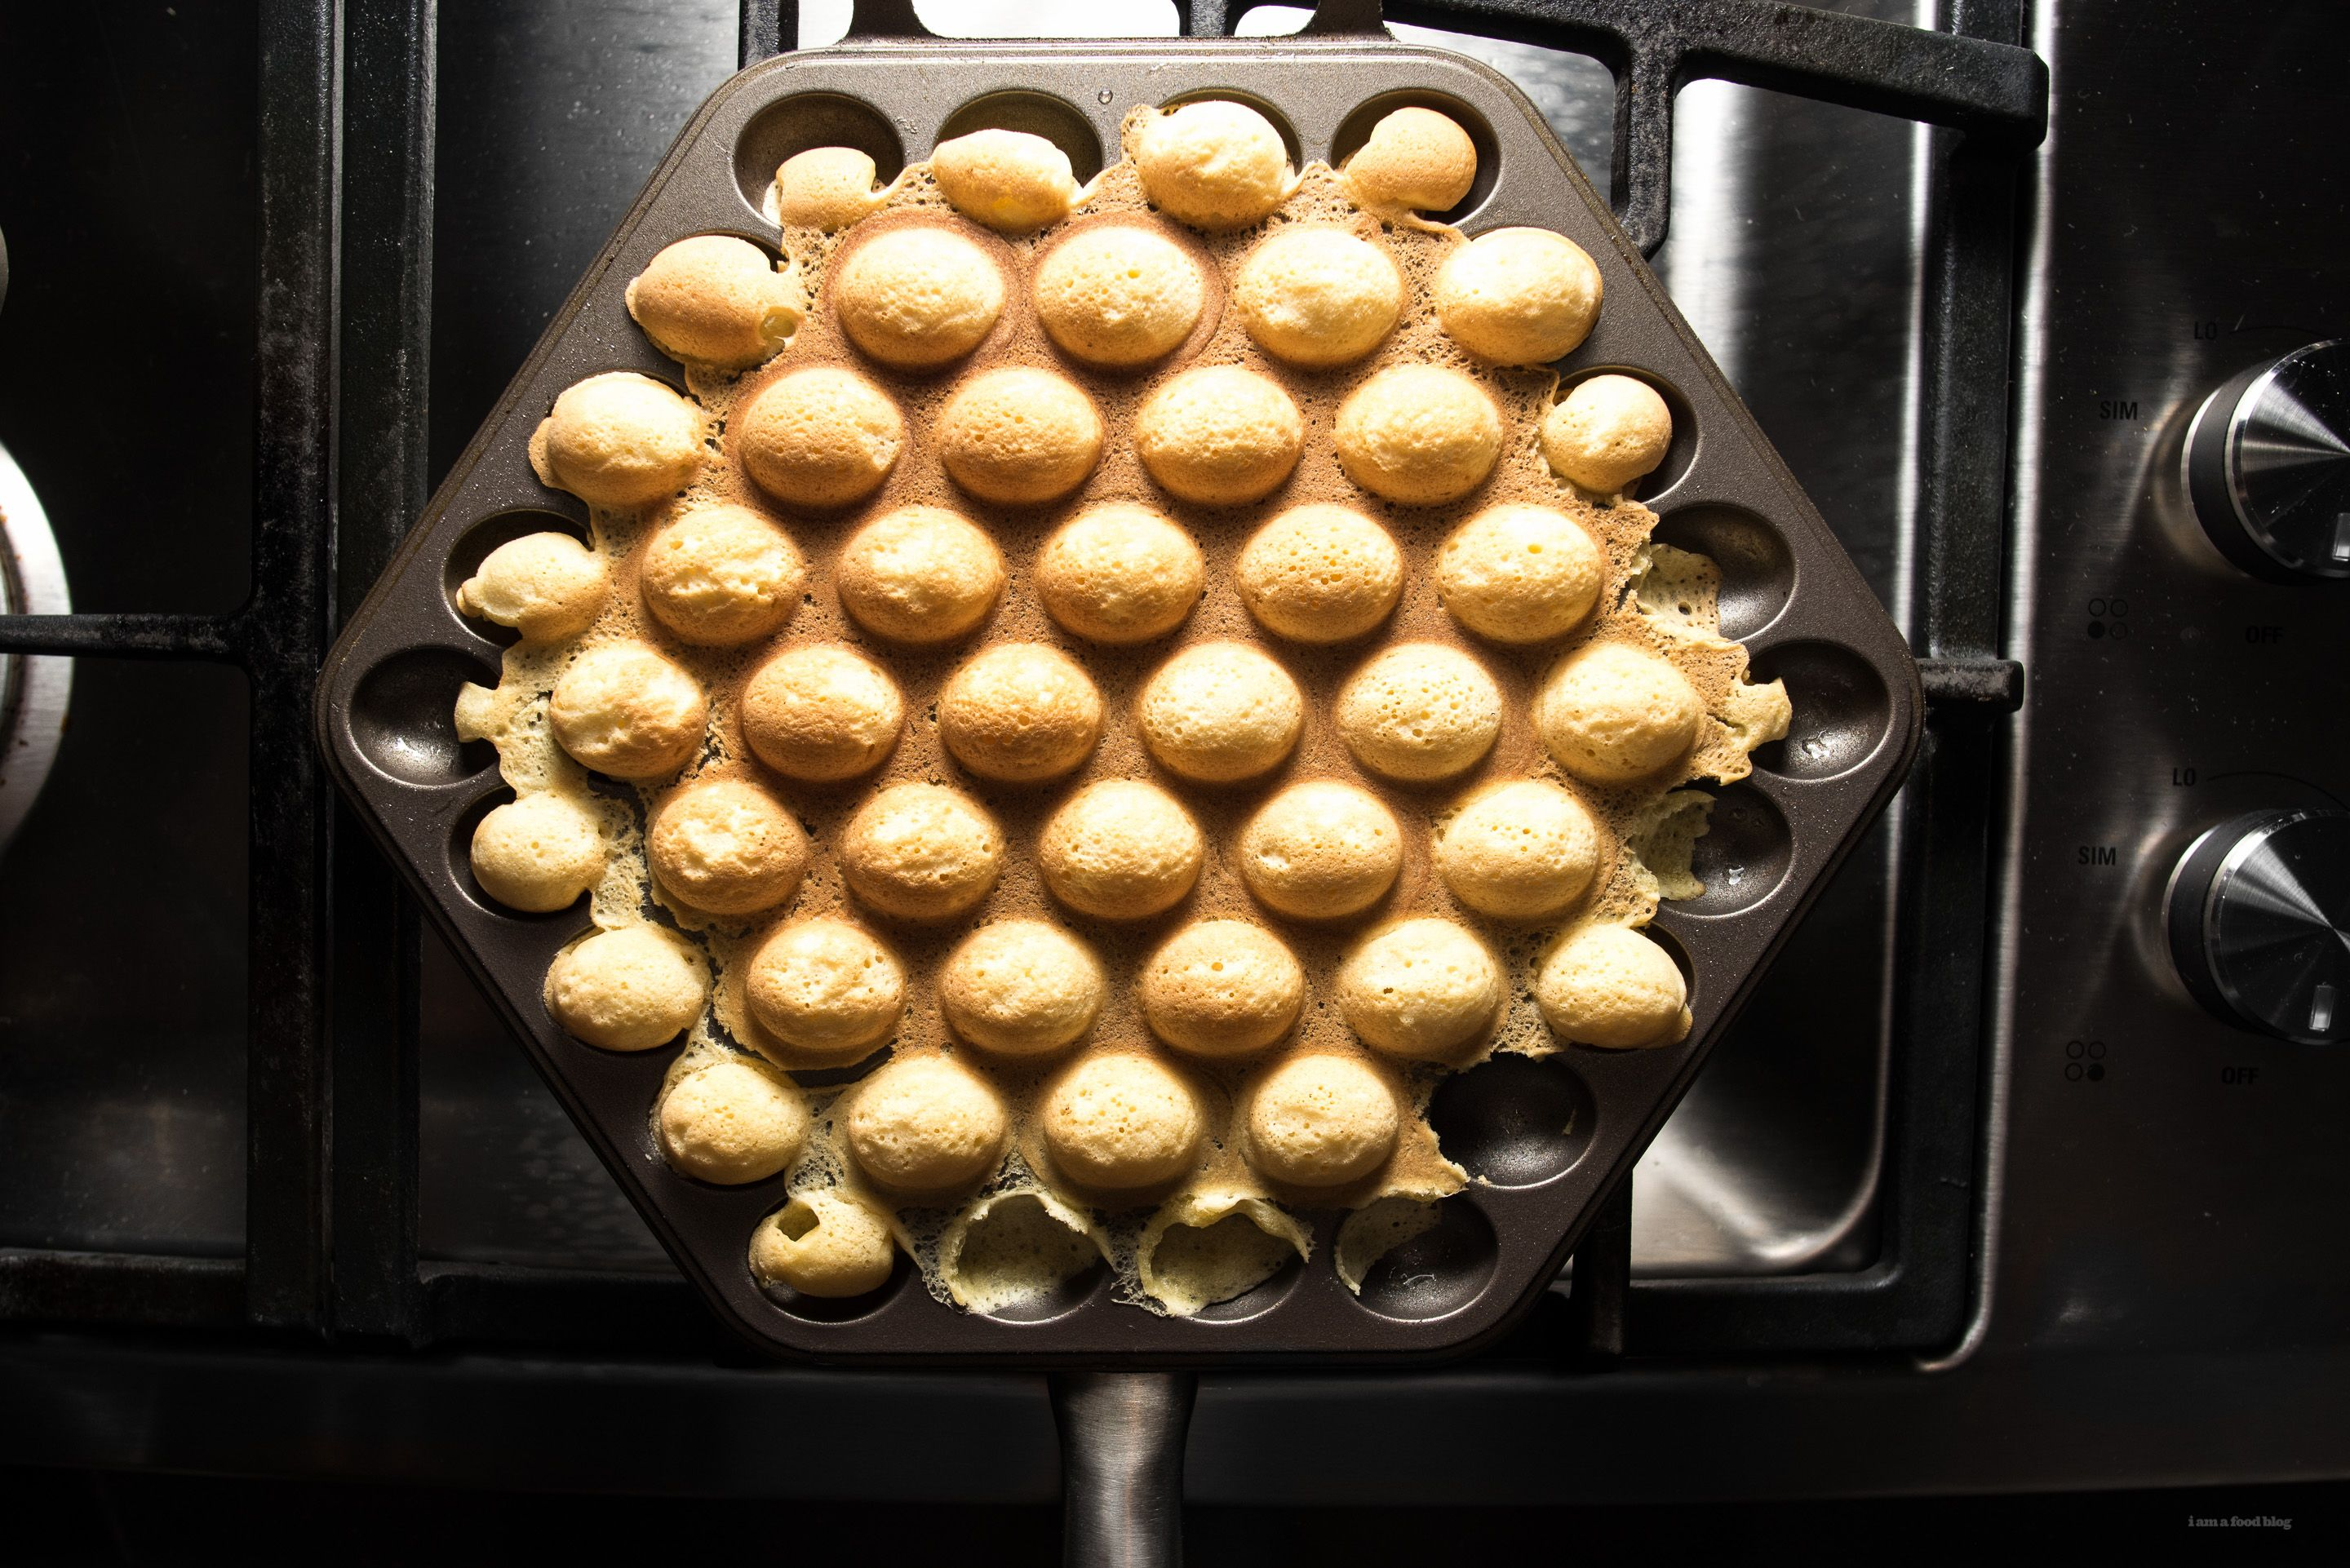 Hong Kong Bubble Waffle Recipe International Recipes Pinterest Hot Wheels Bread Boxs Hijau I Remember Being A Kid At The Night Market Up Way Past My Bedtime Eagerly Awaiting Piping Bag Of These Little Egg Shaped